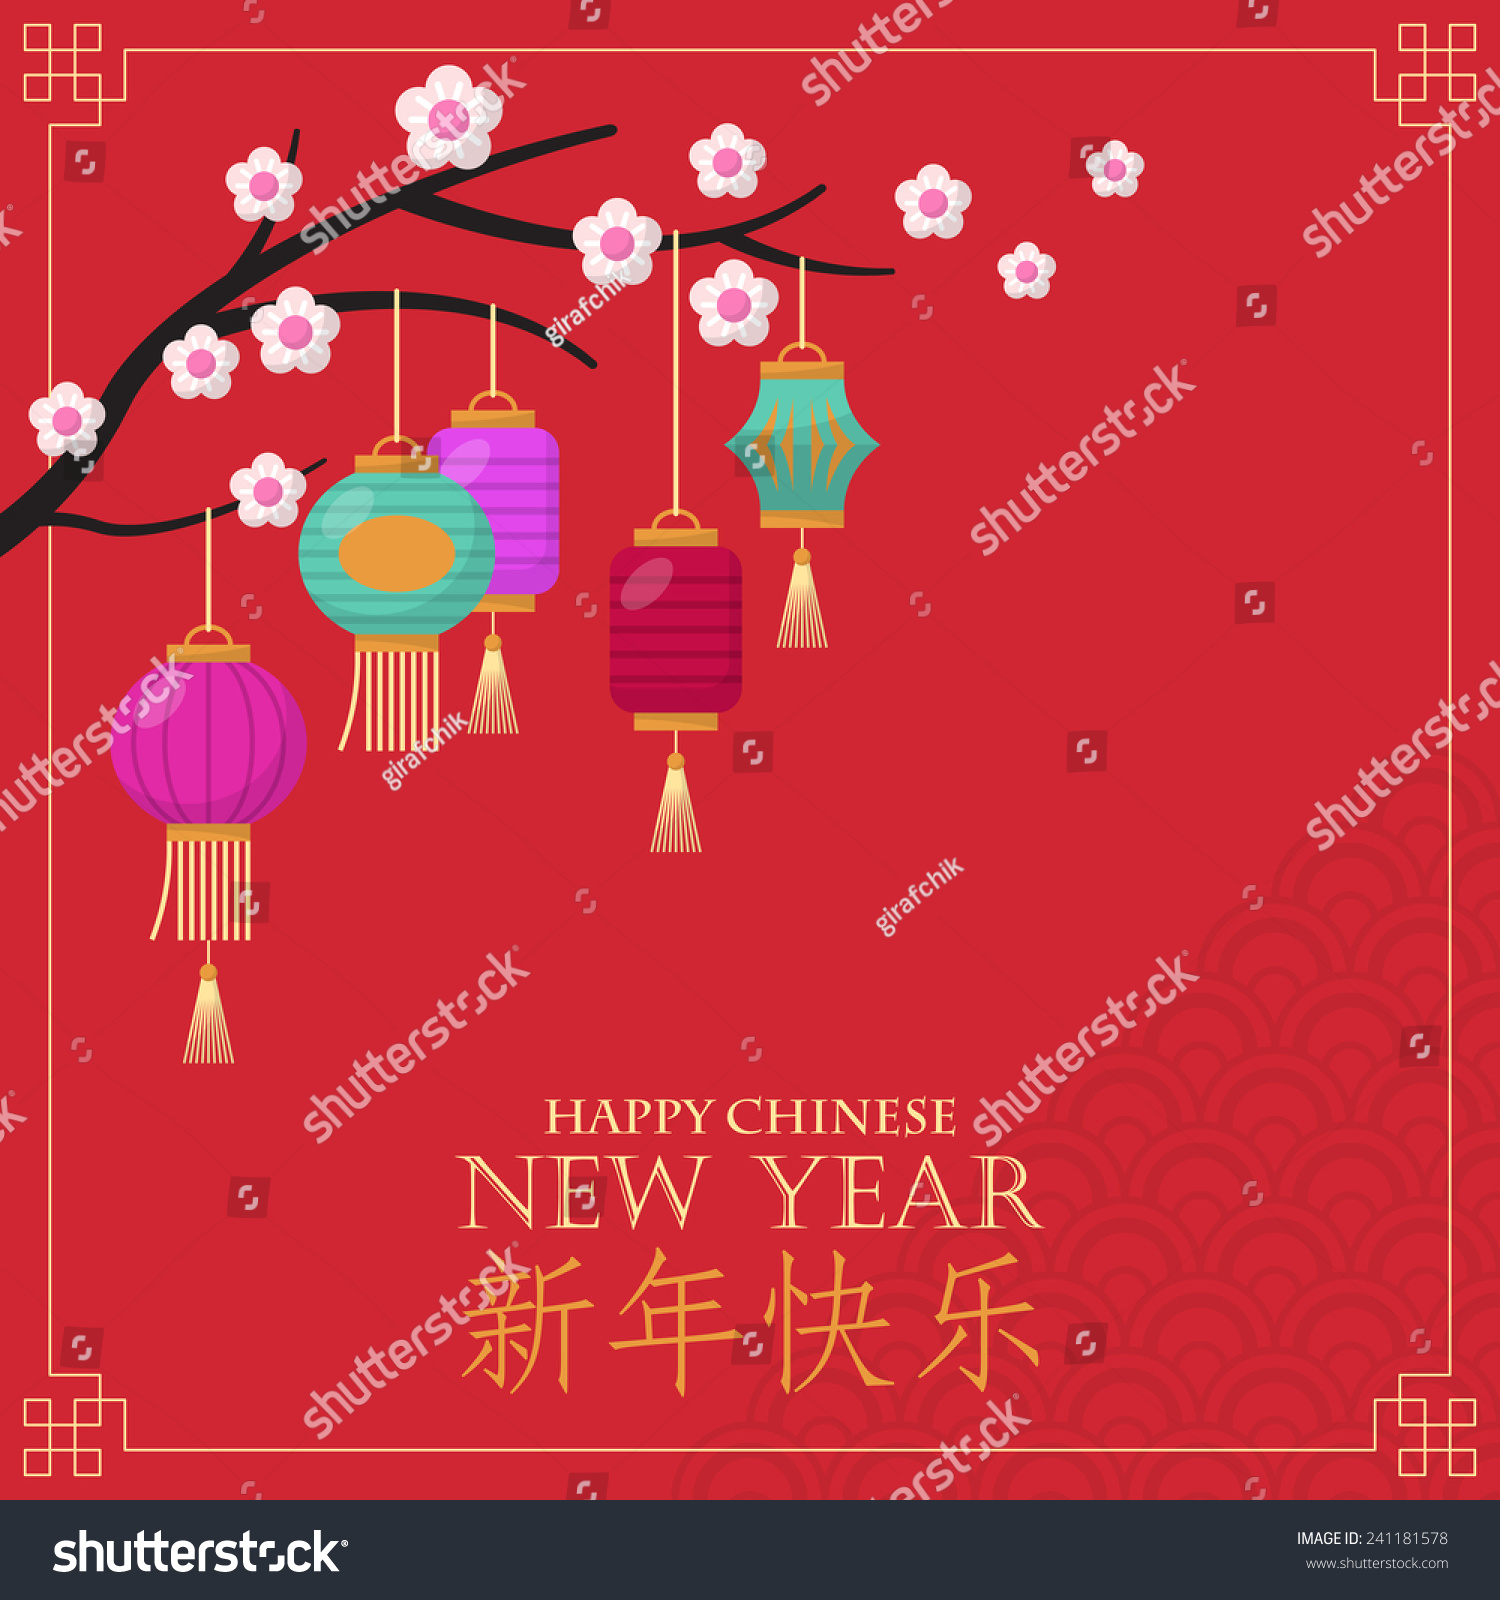 Chinese New Year Greeting Card Design Stock Vector Royalty Free